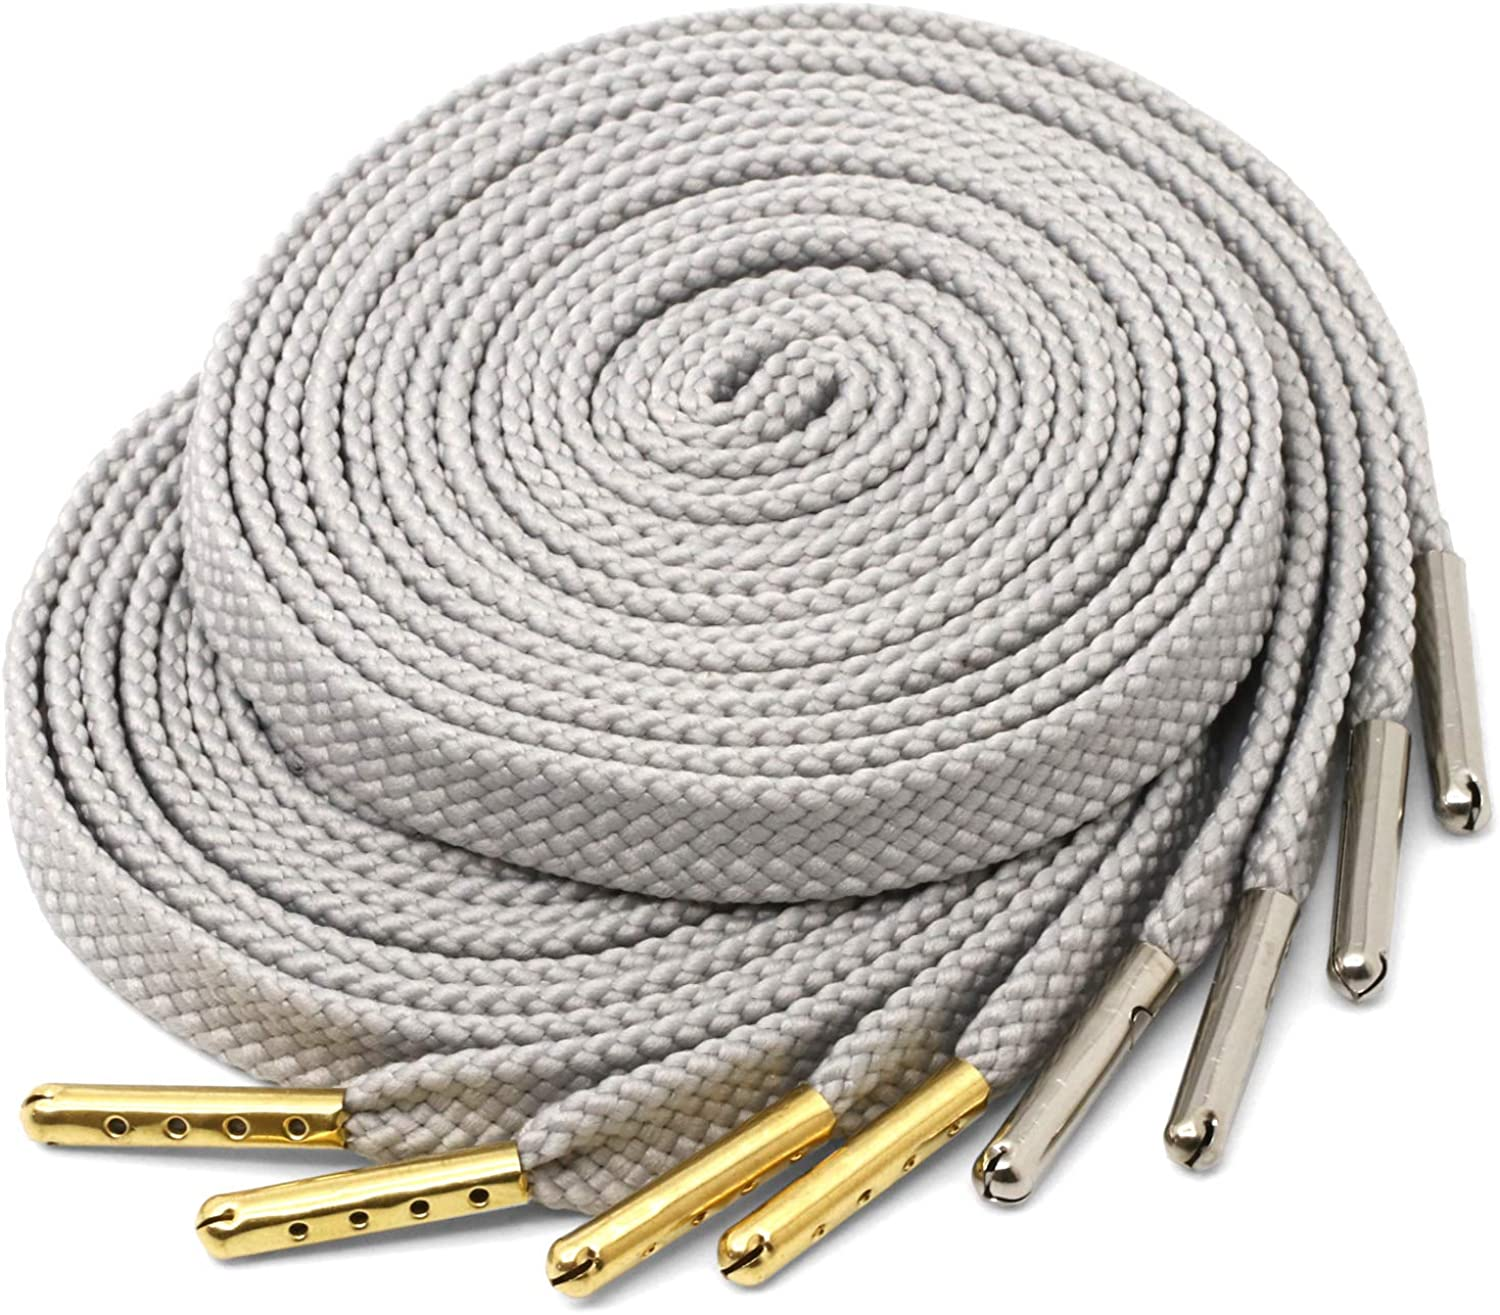 Thick Flat Wide White Shoelaces wcopper metal tips